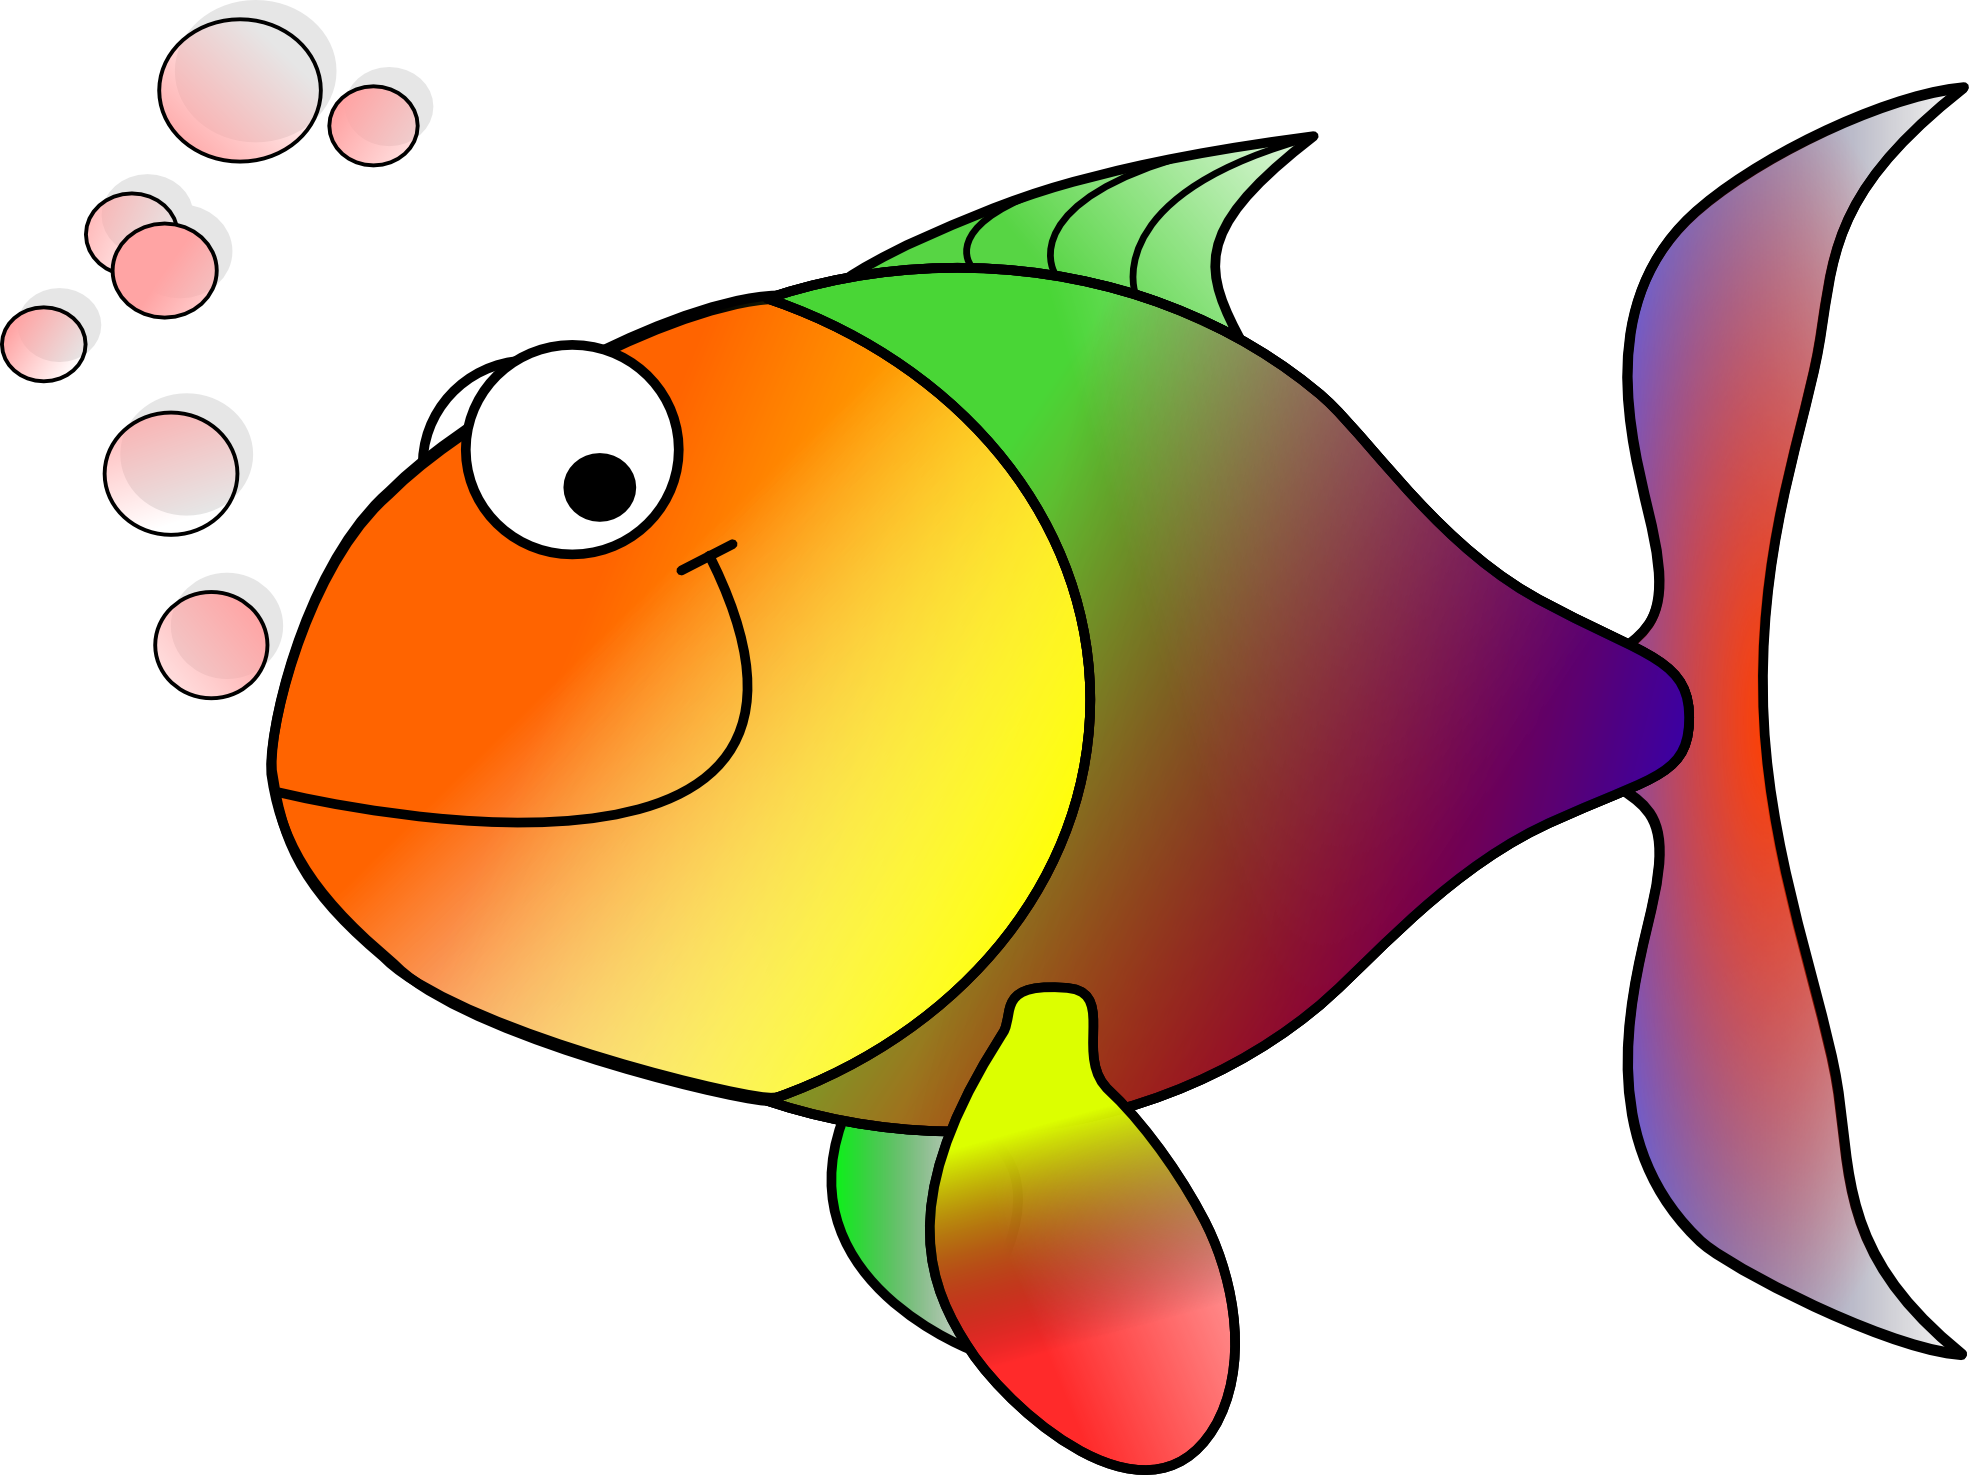 1 fish clipart download Free Clip art - Clip Art Collection - Download Clipart on Clipart ... download